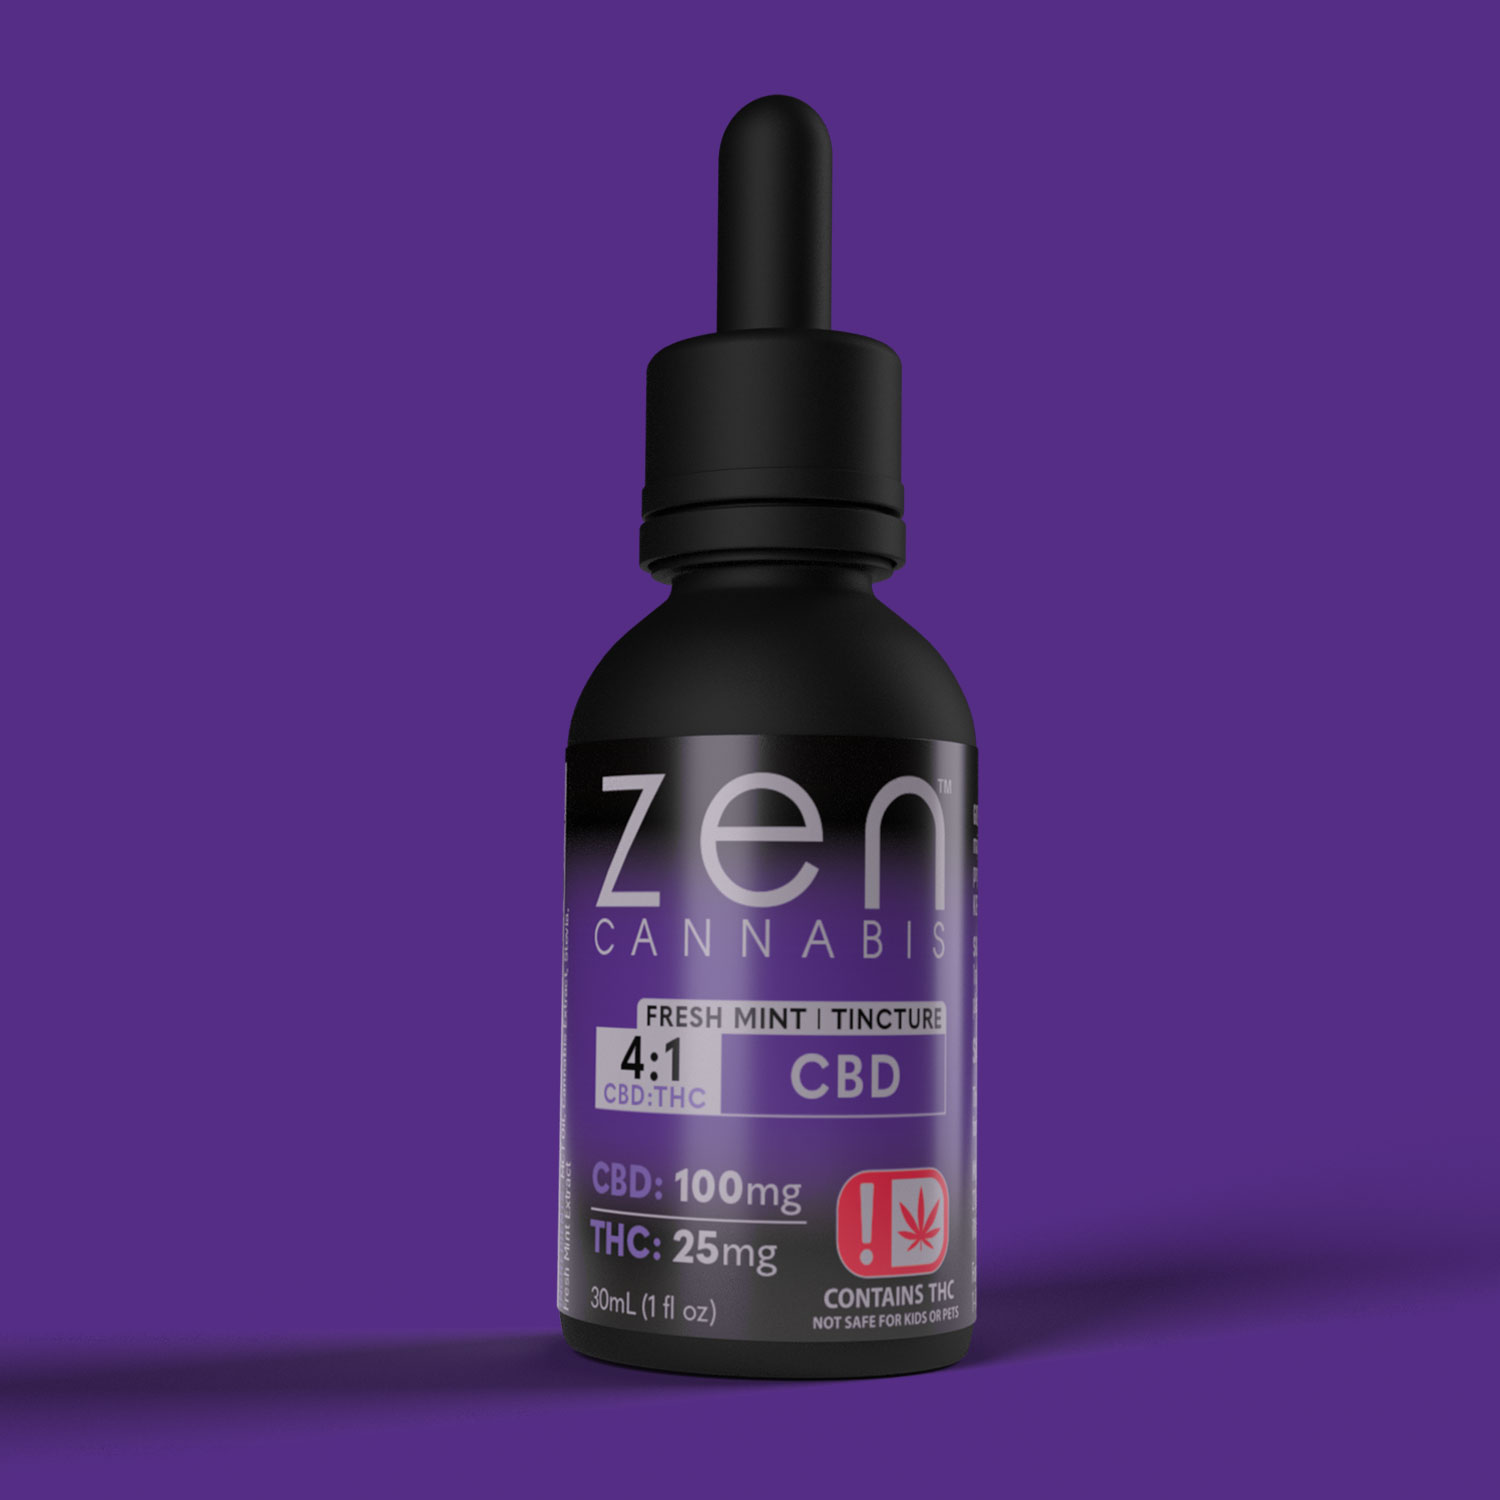 FRESH MINT 25mg THC per bottle 100mg CBD per bottle Bursting with fresh mint flavor, Zen Cannabis CBD tincture provides relief to your body and mind. This CBD-heavy tincture will keep you alert, relaxed and in control.  25mg THC | 100mg CBD 1oz (30ml)